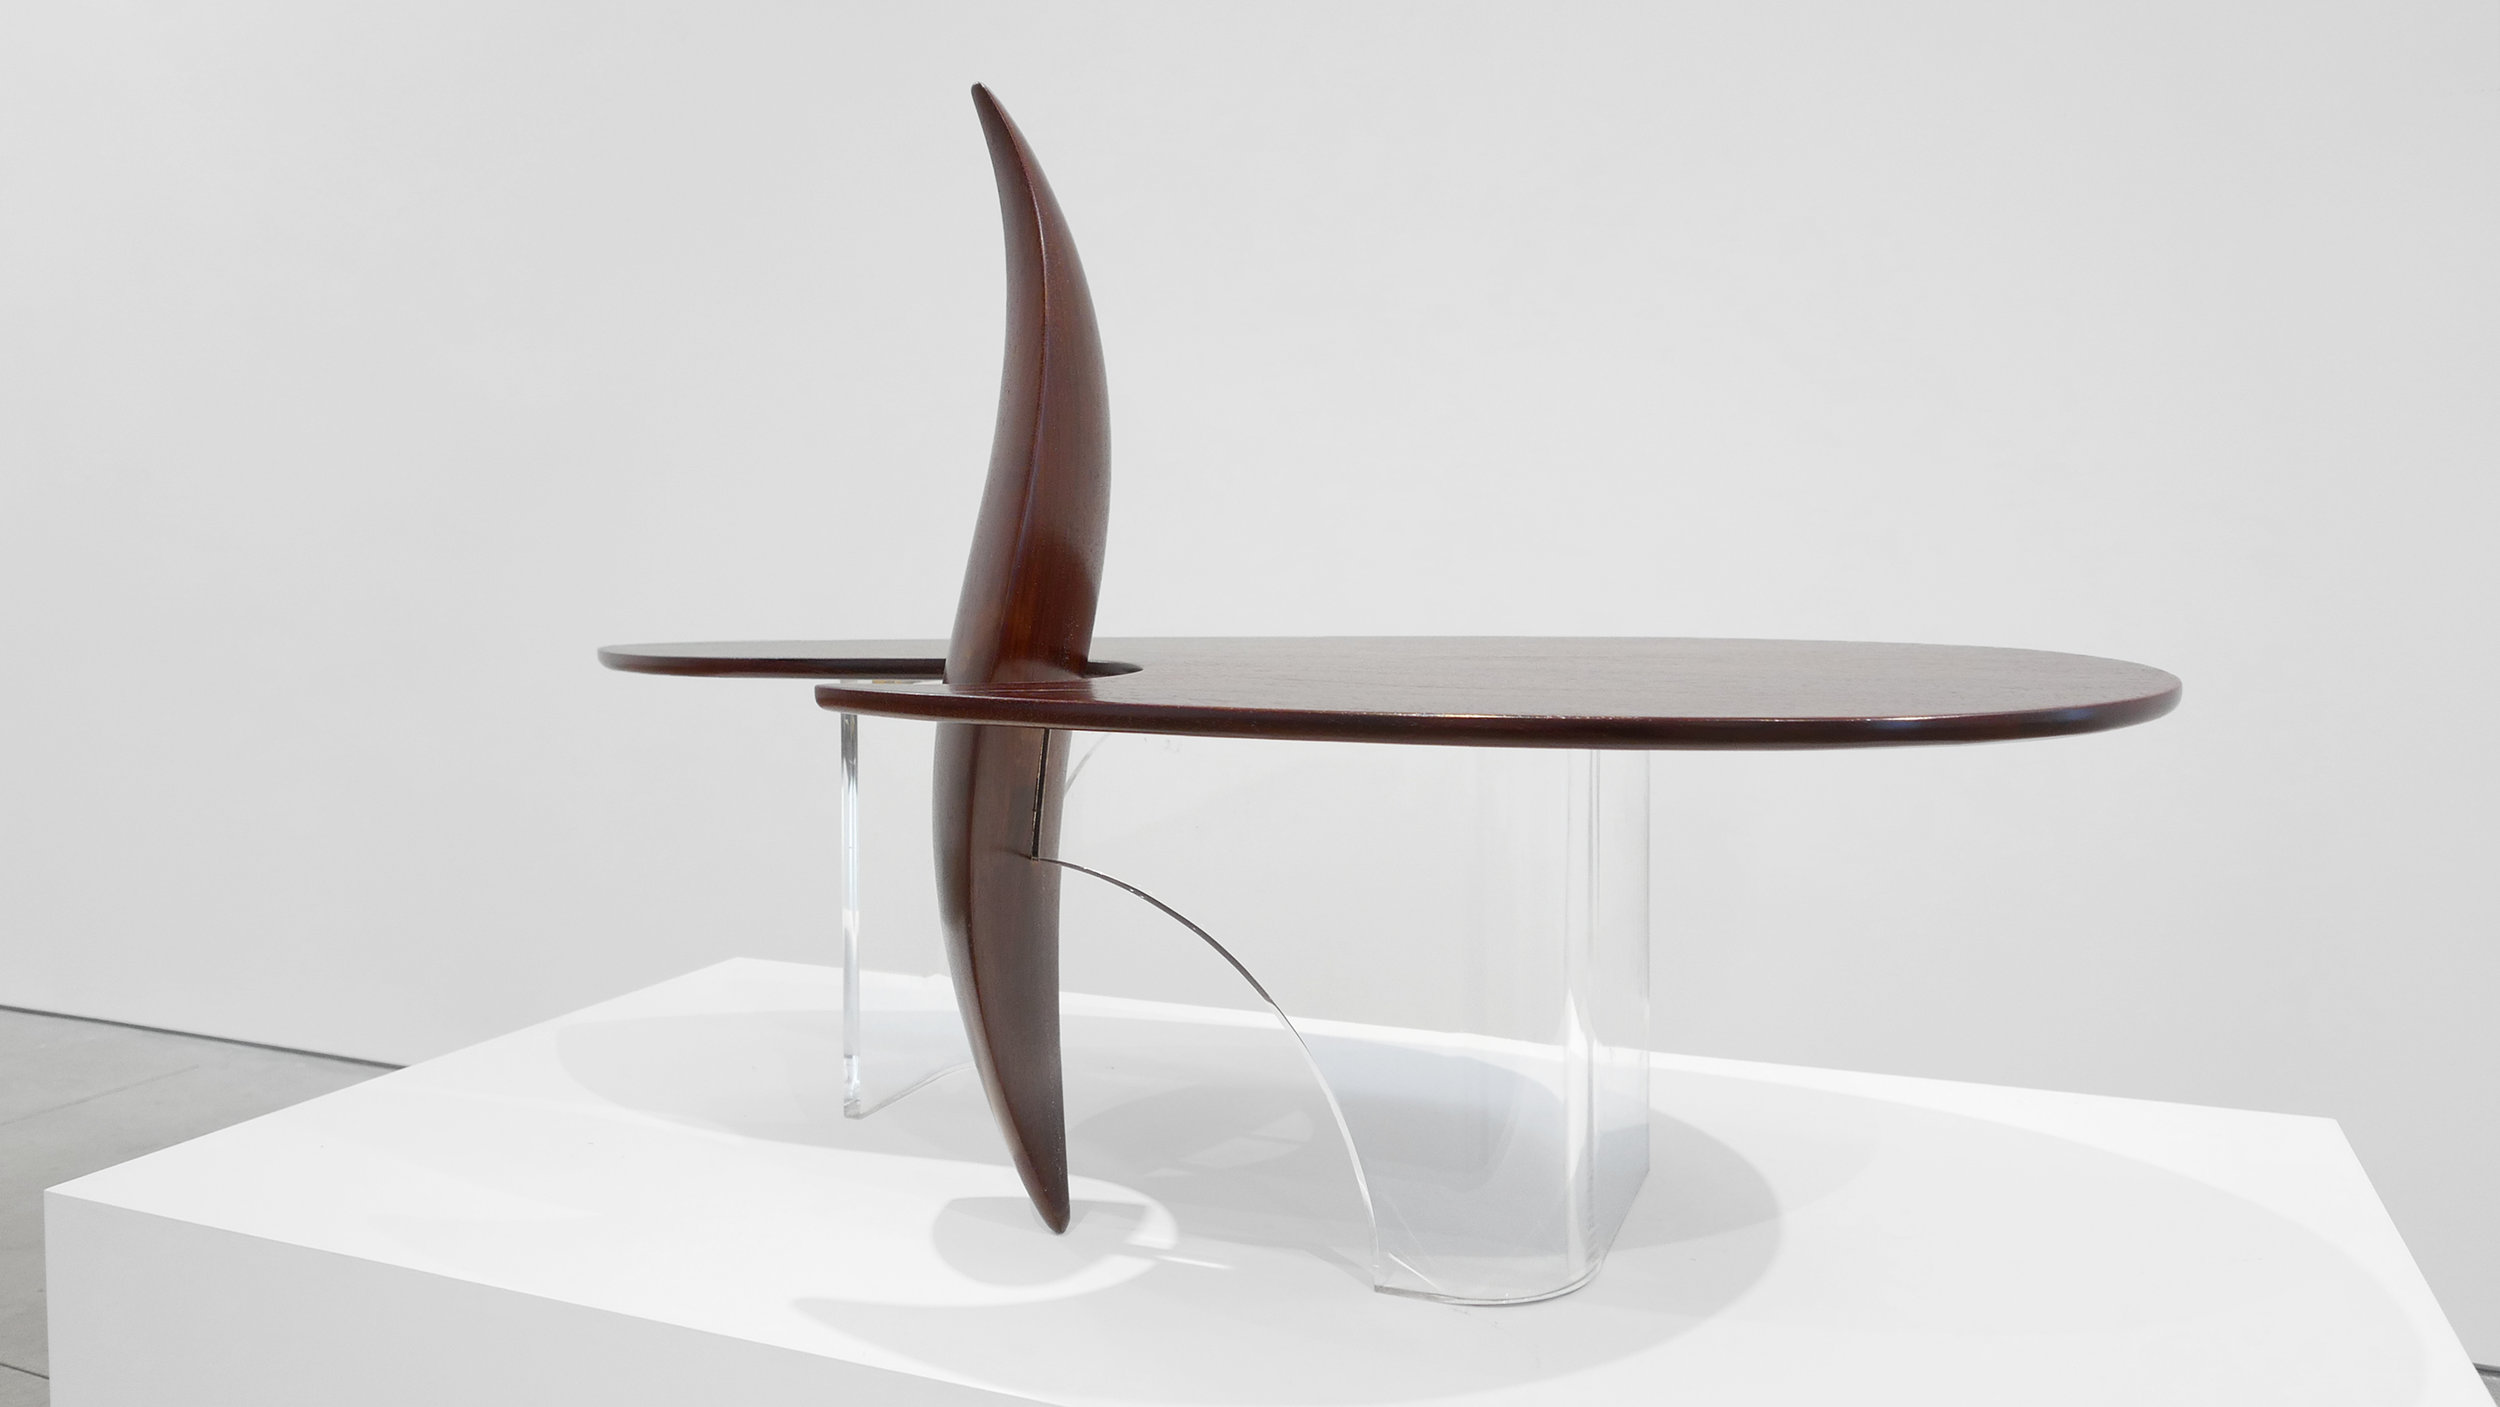 7. Michael Coffey, 'Encounter' Coffee Table, c. 1979, lucite, wood, 35H x 60W x 29D inches.jpg